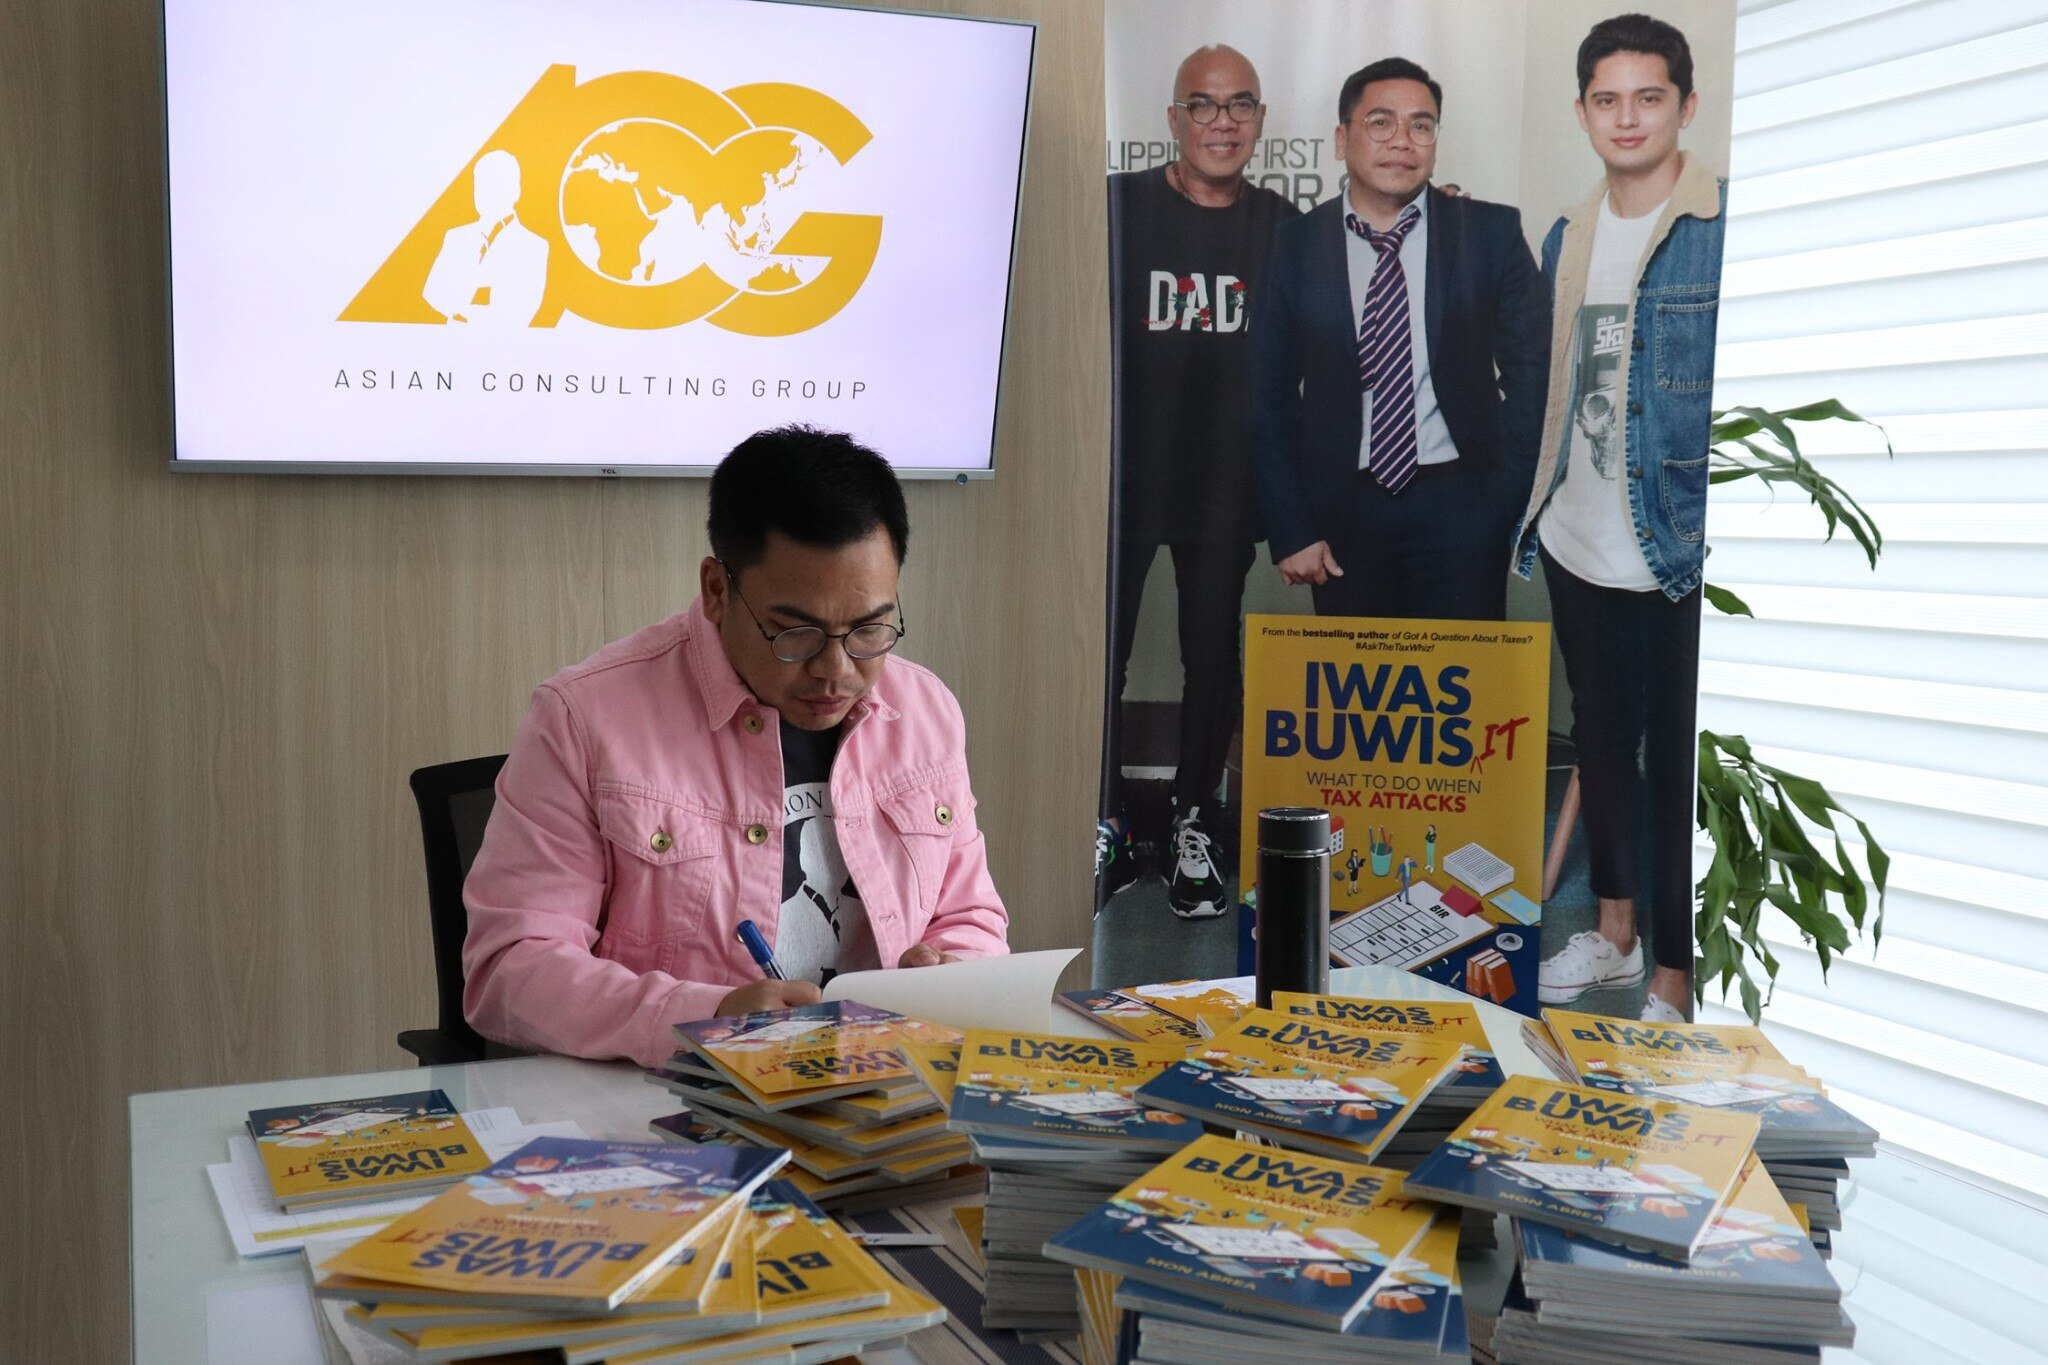 Author Mon Abrea signs copies of Iwas Buwis It book  Photo courtesy of Asian Consulting Group's Facebook page